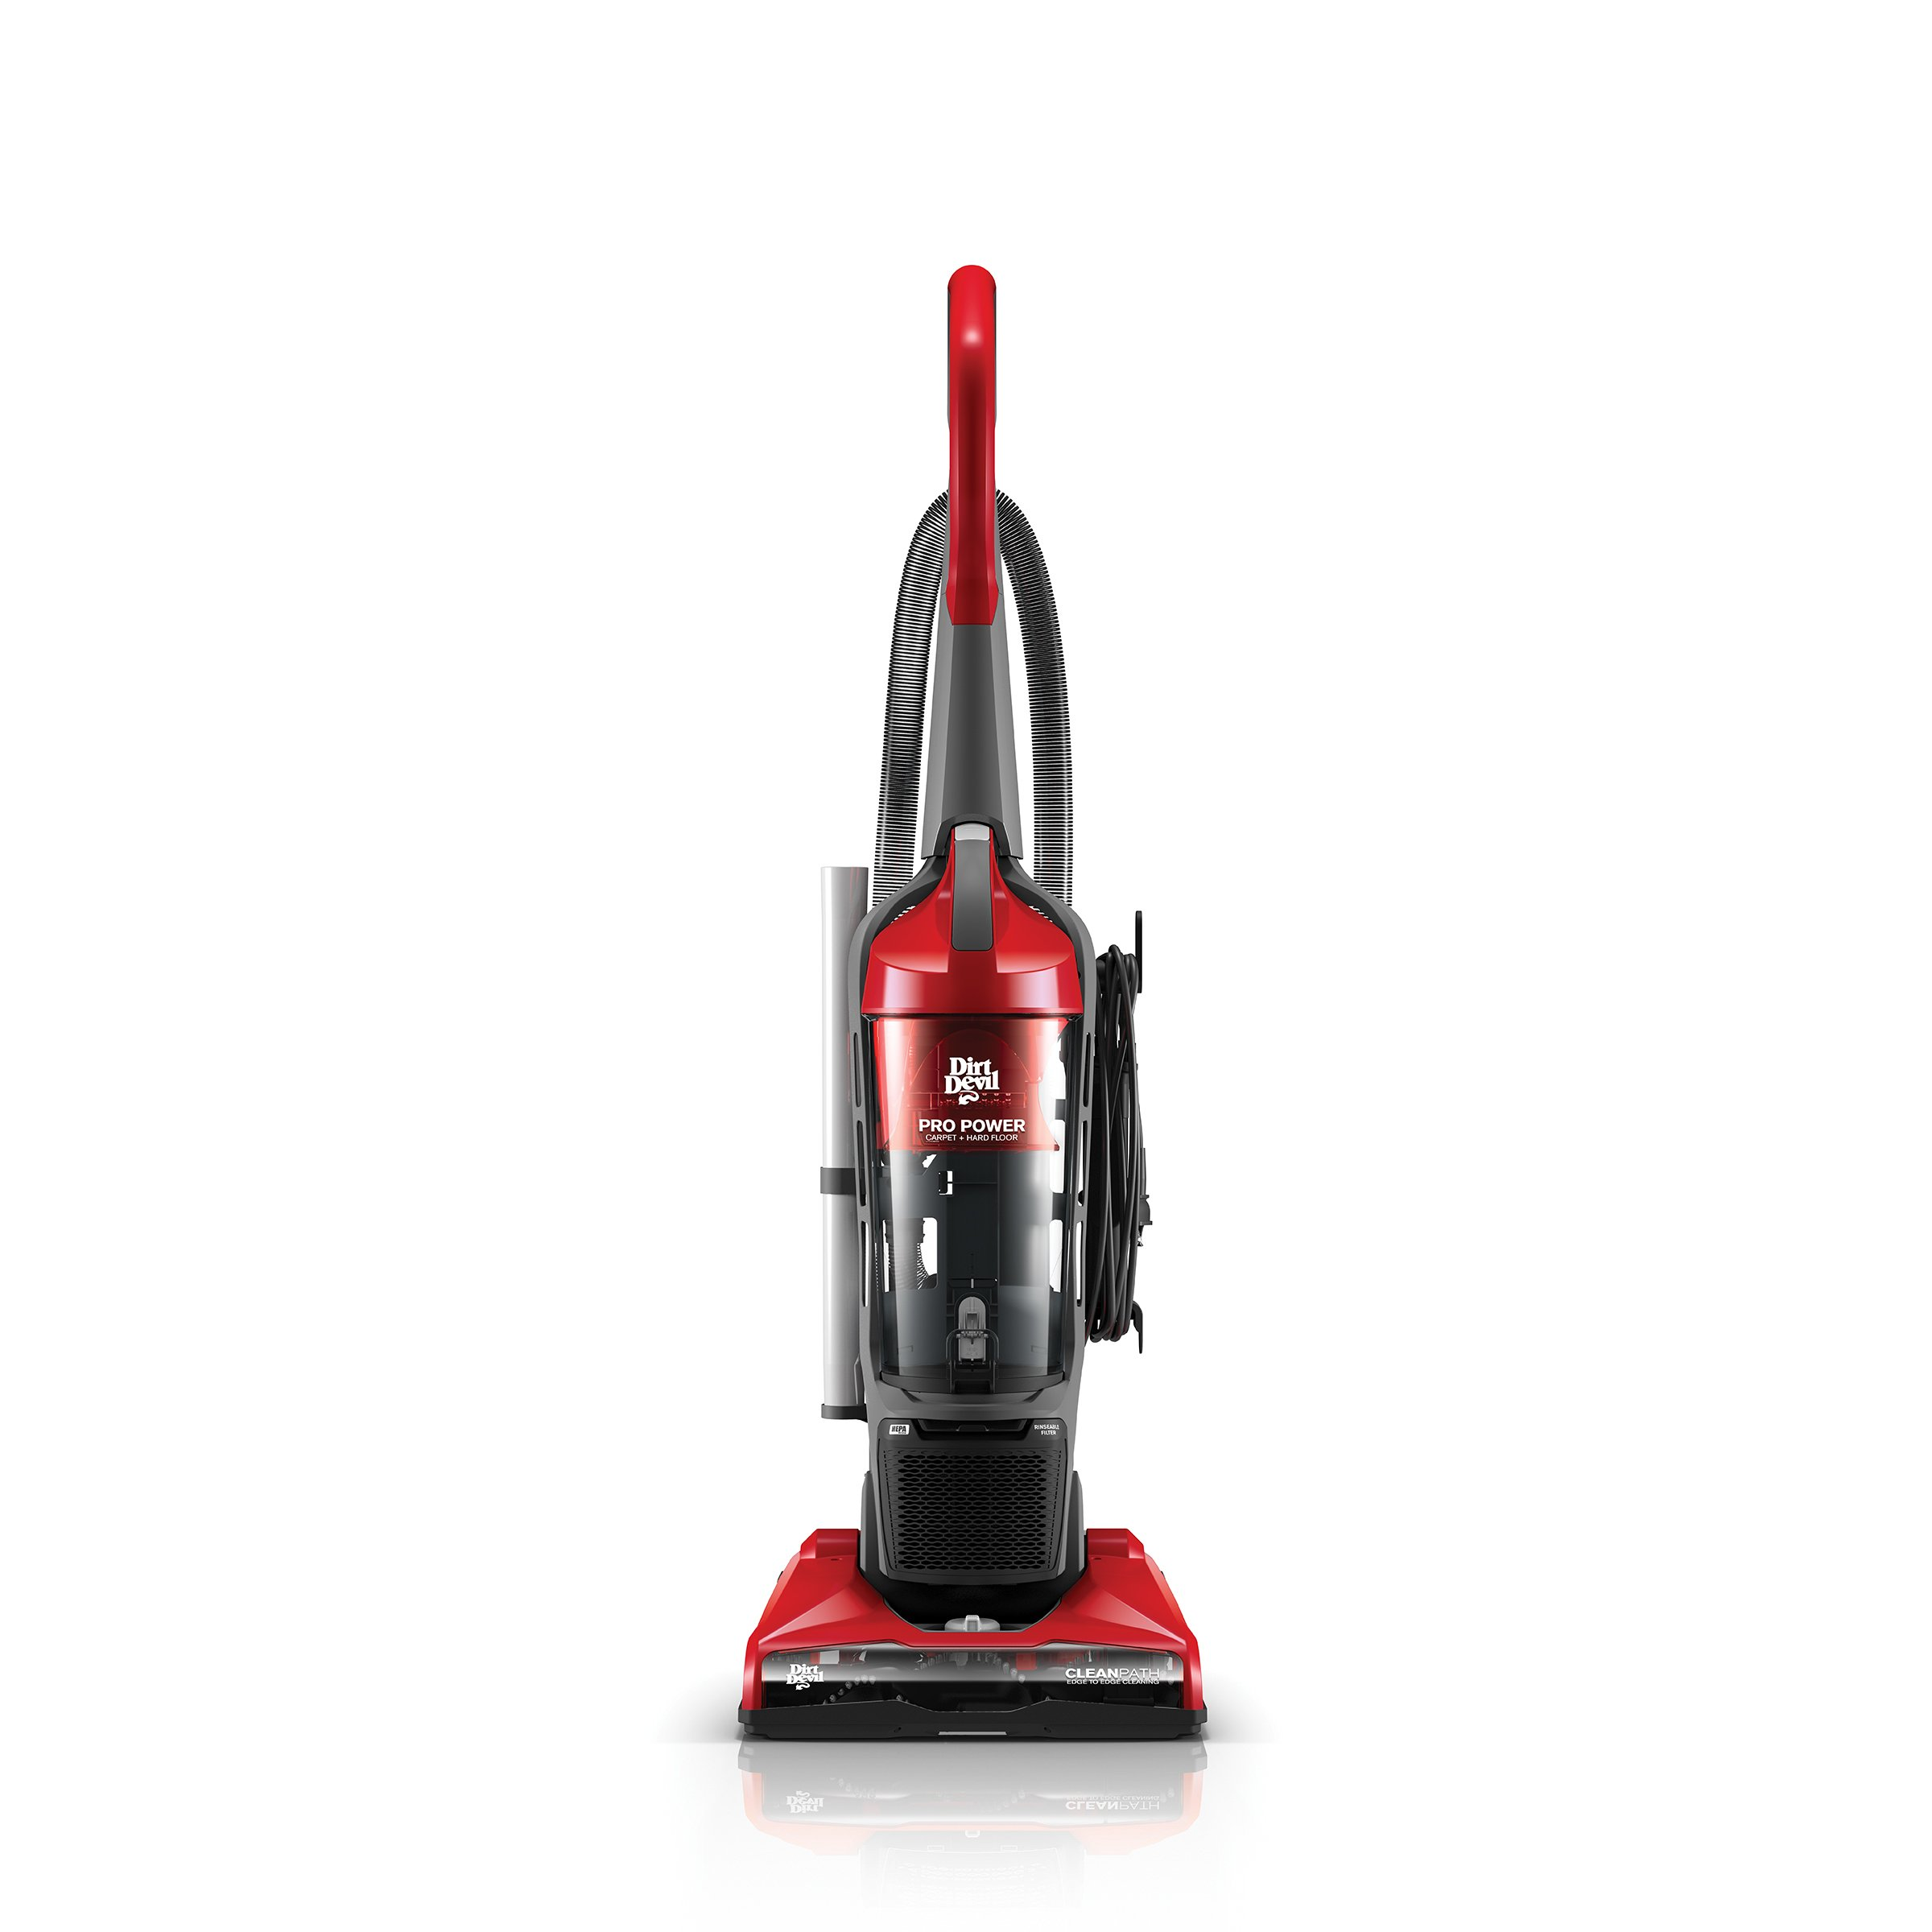 Dirt Devil Vacuum Cleaner Pro Power Bagless Corded Upright Vacuum UD70172 by Dirt Devil (Image #1)